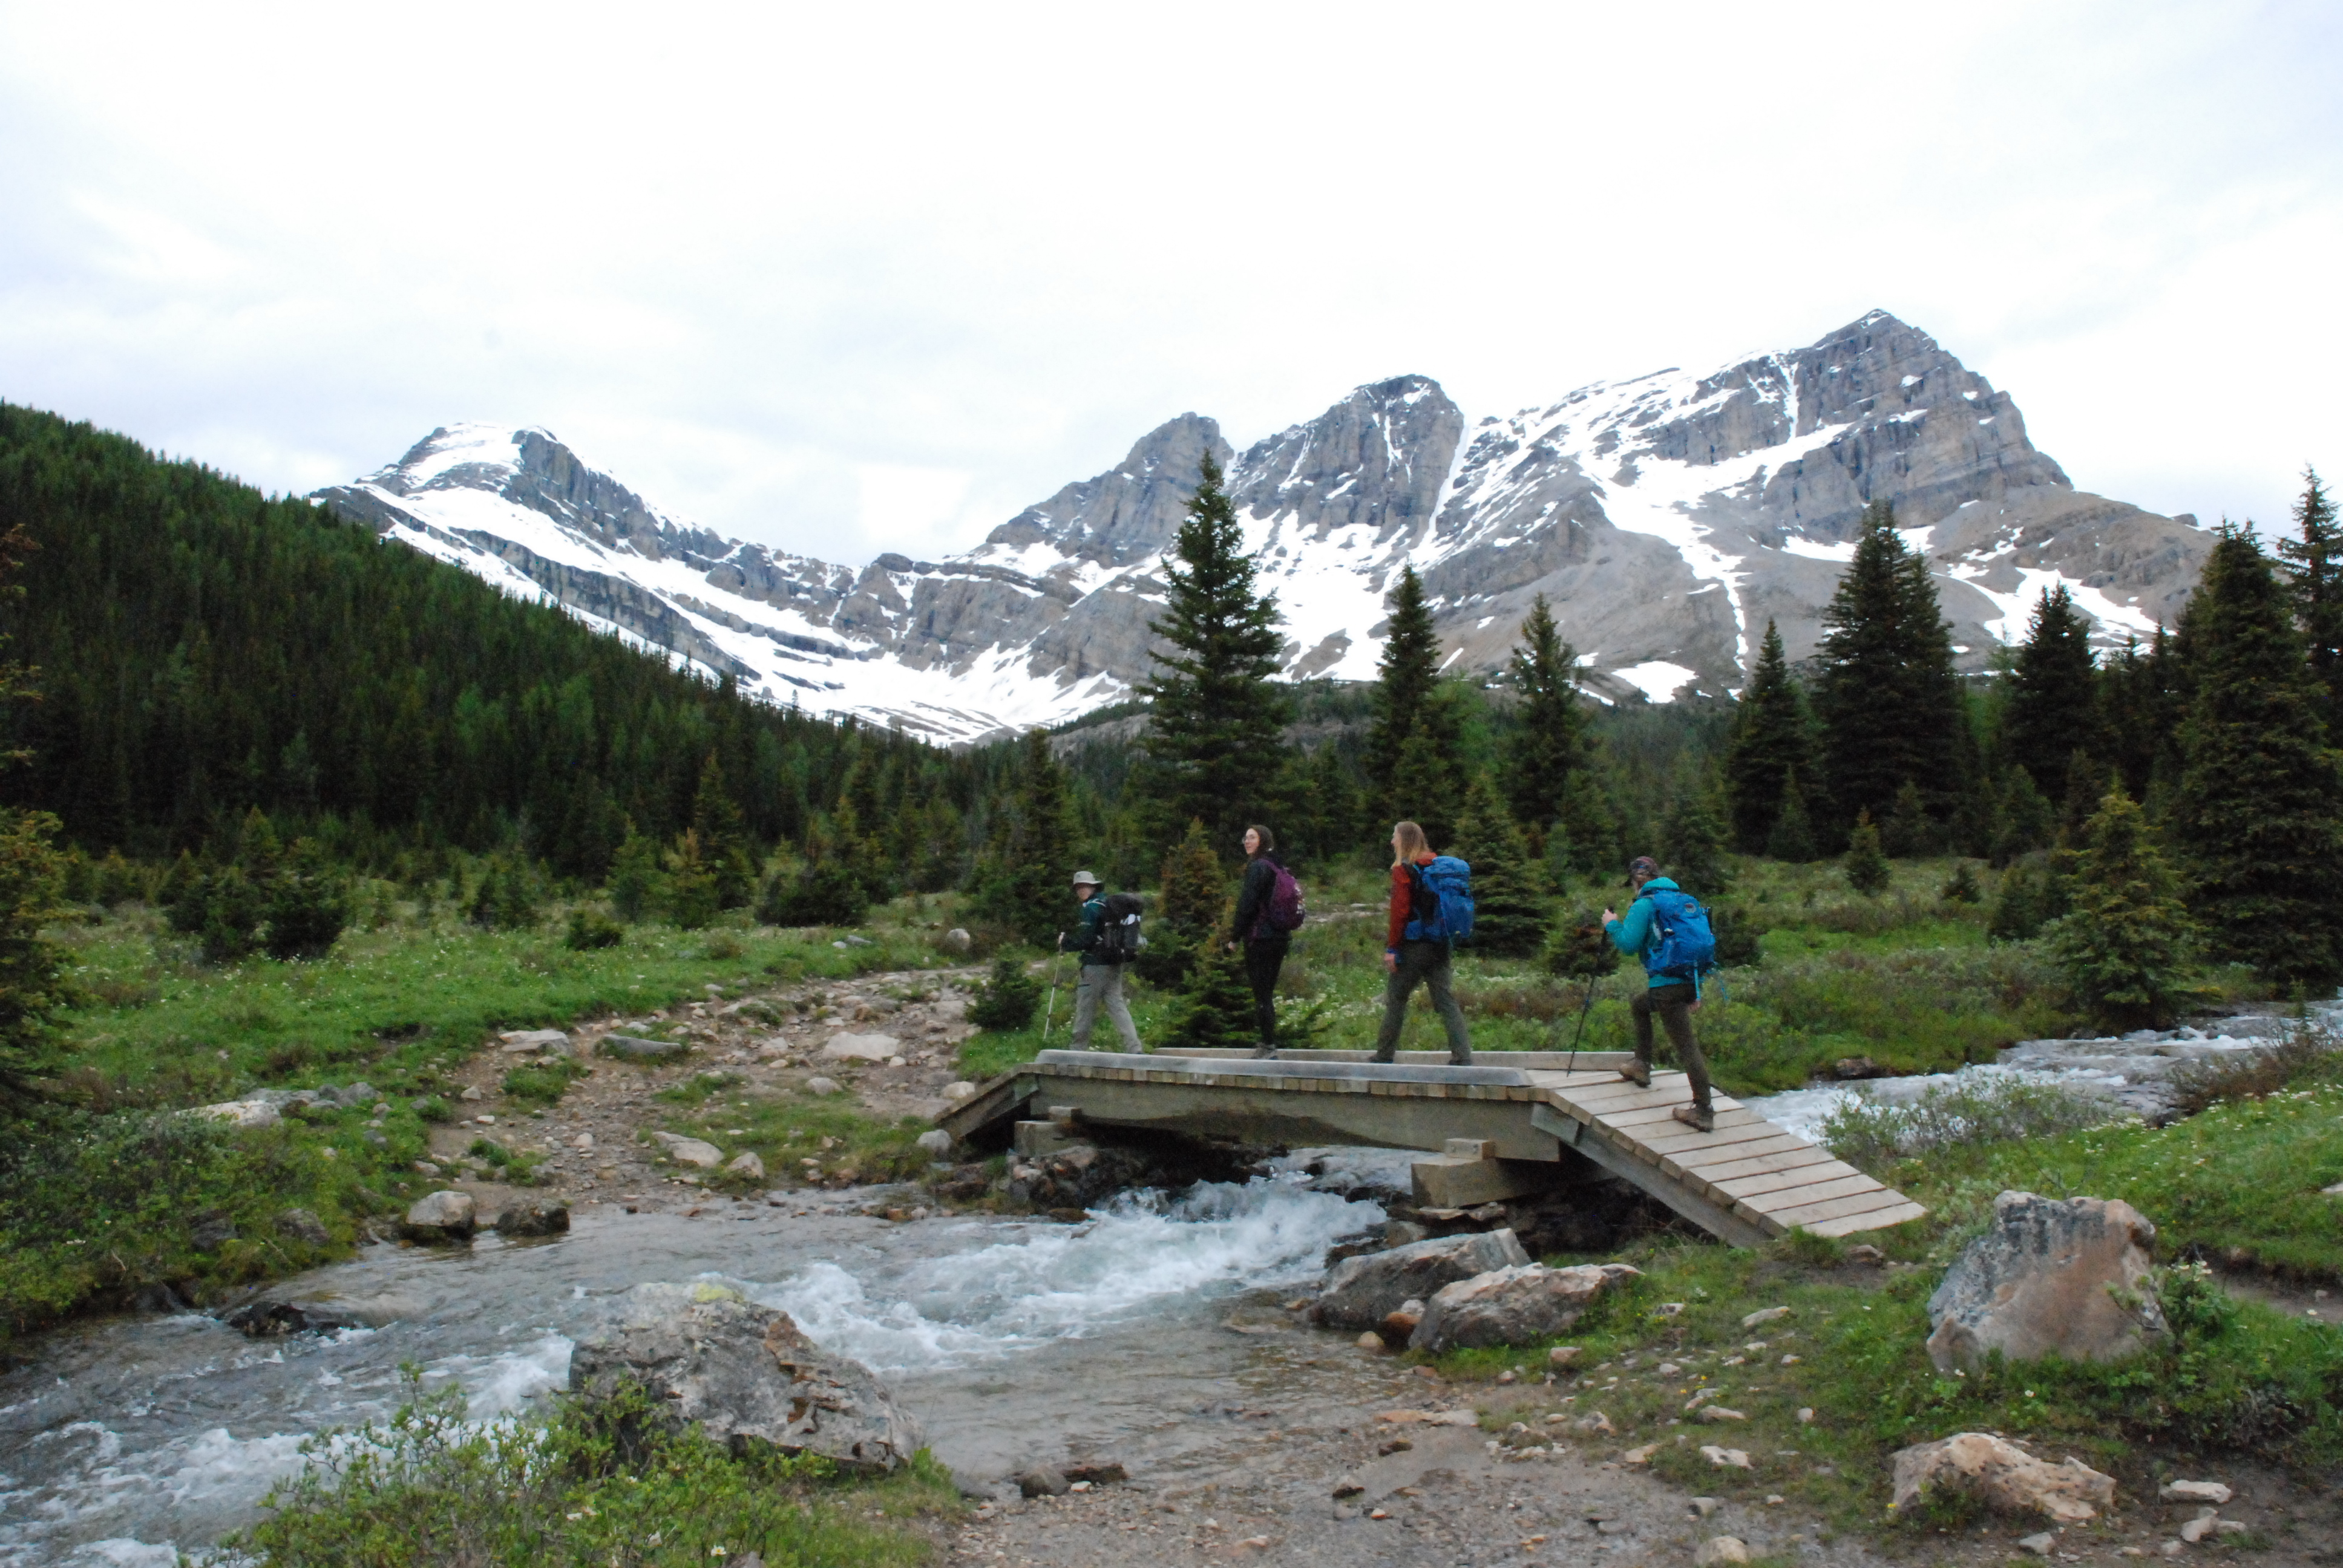 4 hikers crossing a bridge over a river with mountain in the background